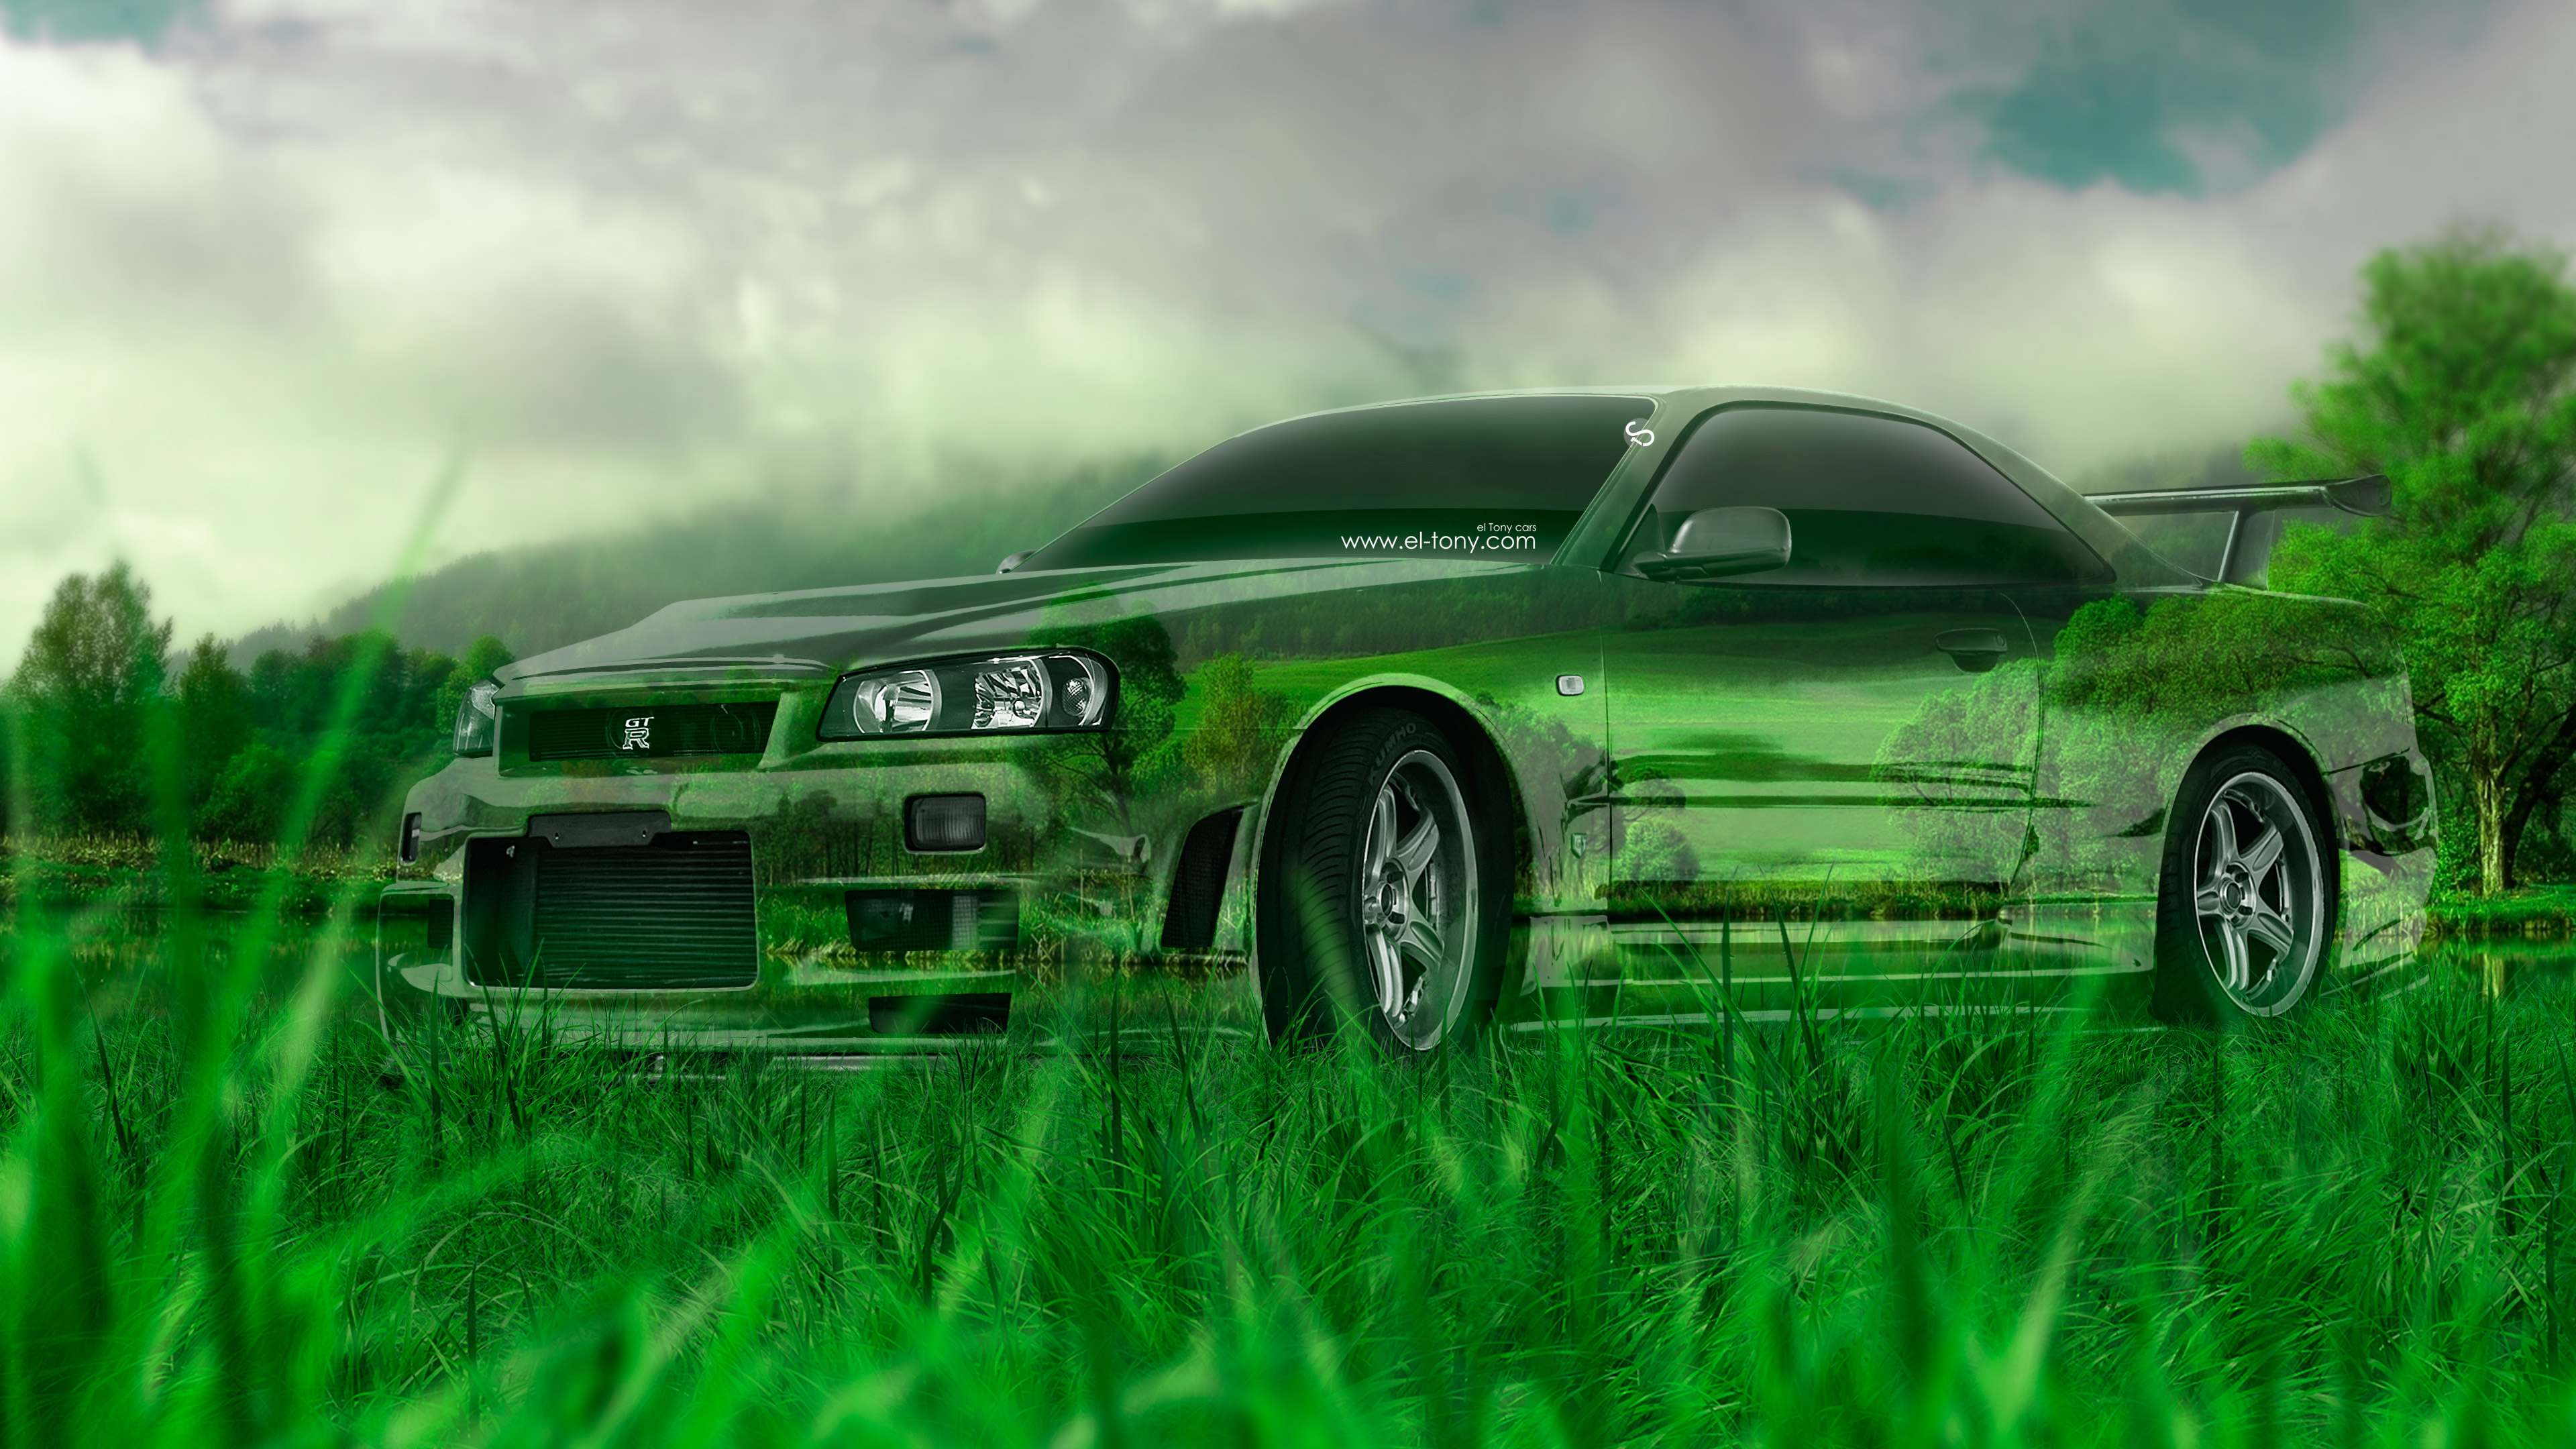 Nissan-Skyline-GTR-R34-JDM-Tuning-Crystal-Nature-Car-2015-Art-Mix-Green-Grass-Style-4K-Wallpapers-design-by-Tony-Kokhan-www.el-tony.com-image